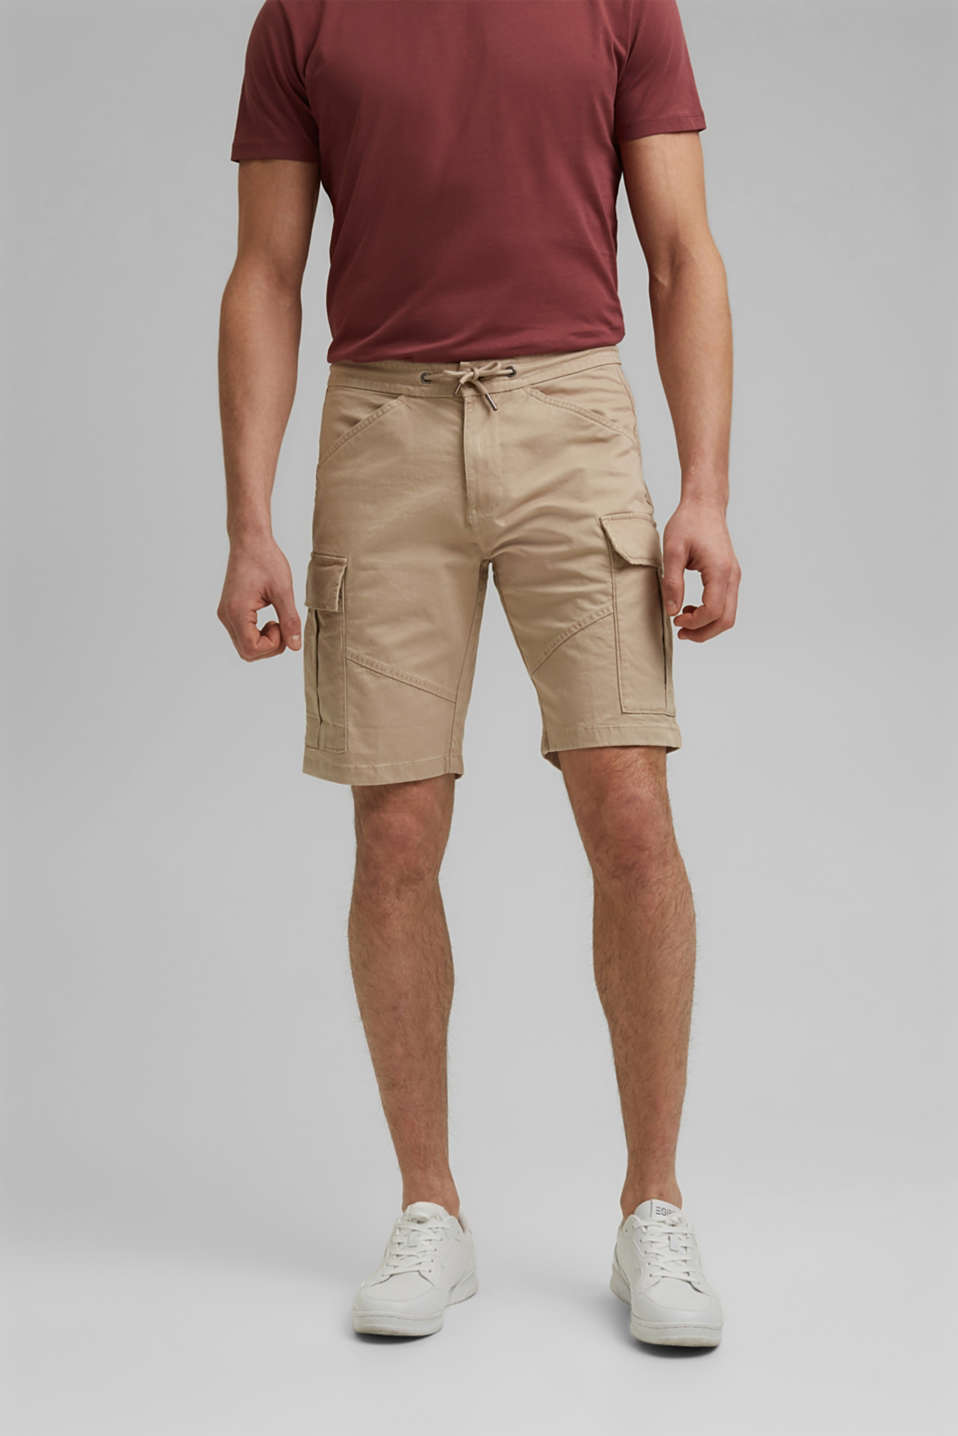 edc - Cargo shorts with an elasticated waistband